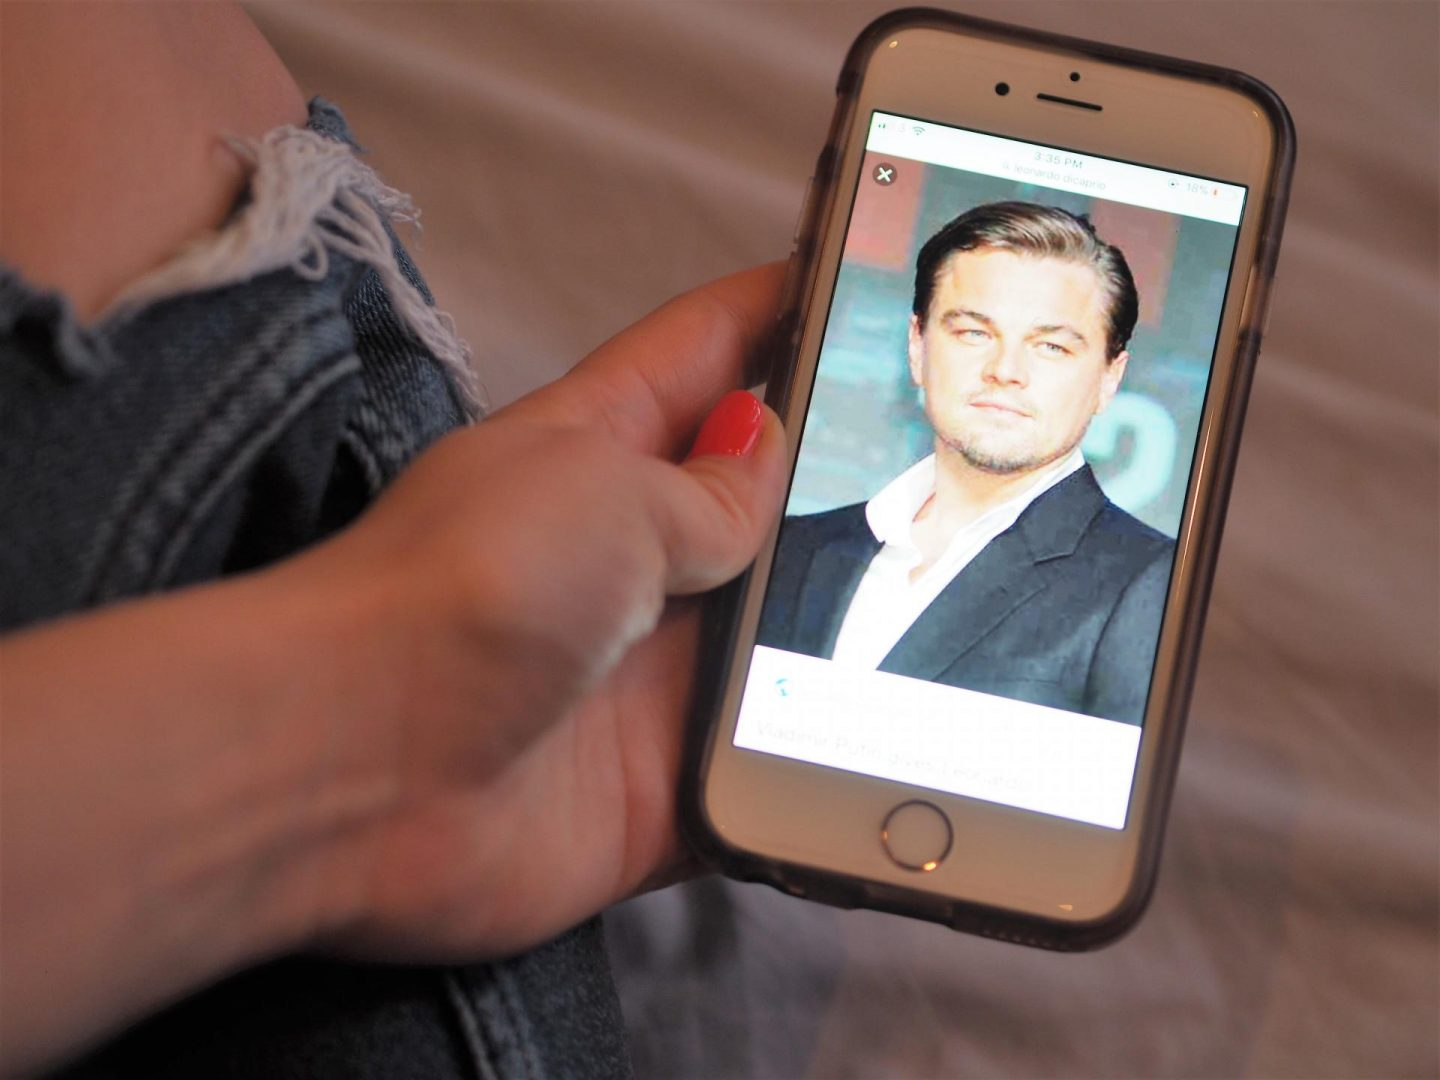 How to Date Someone Who Looks Just Like Your Celebrity Crush with Badoo